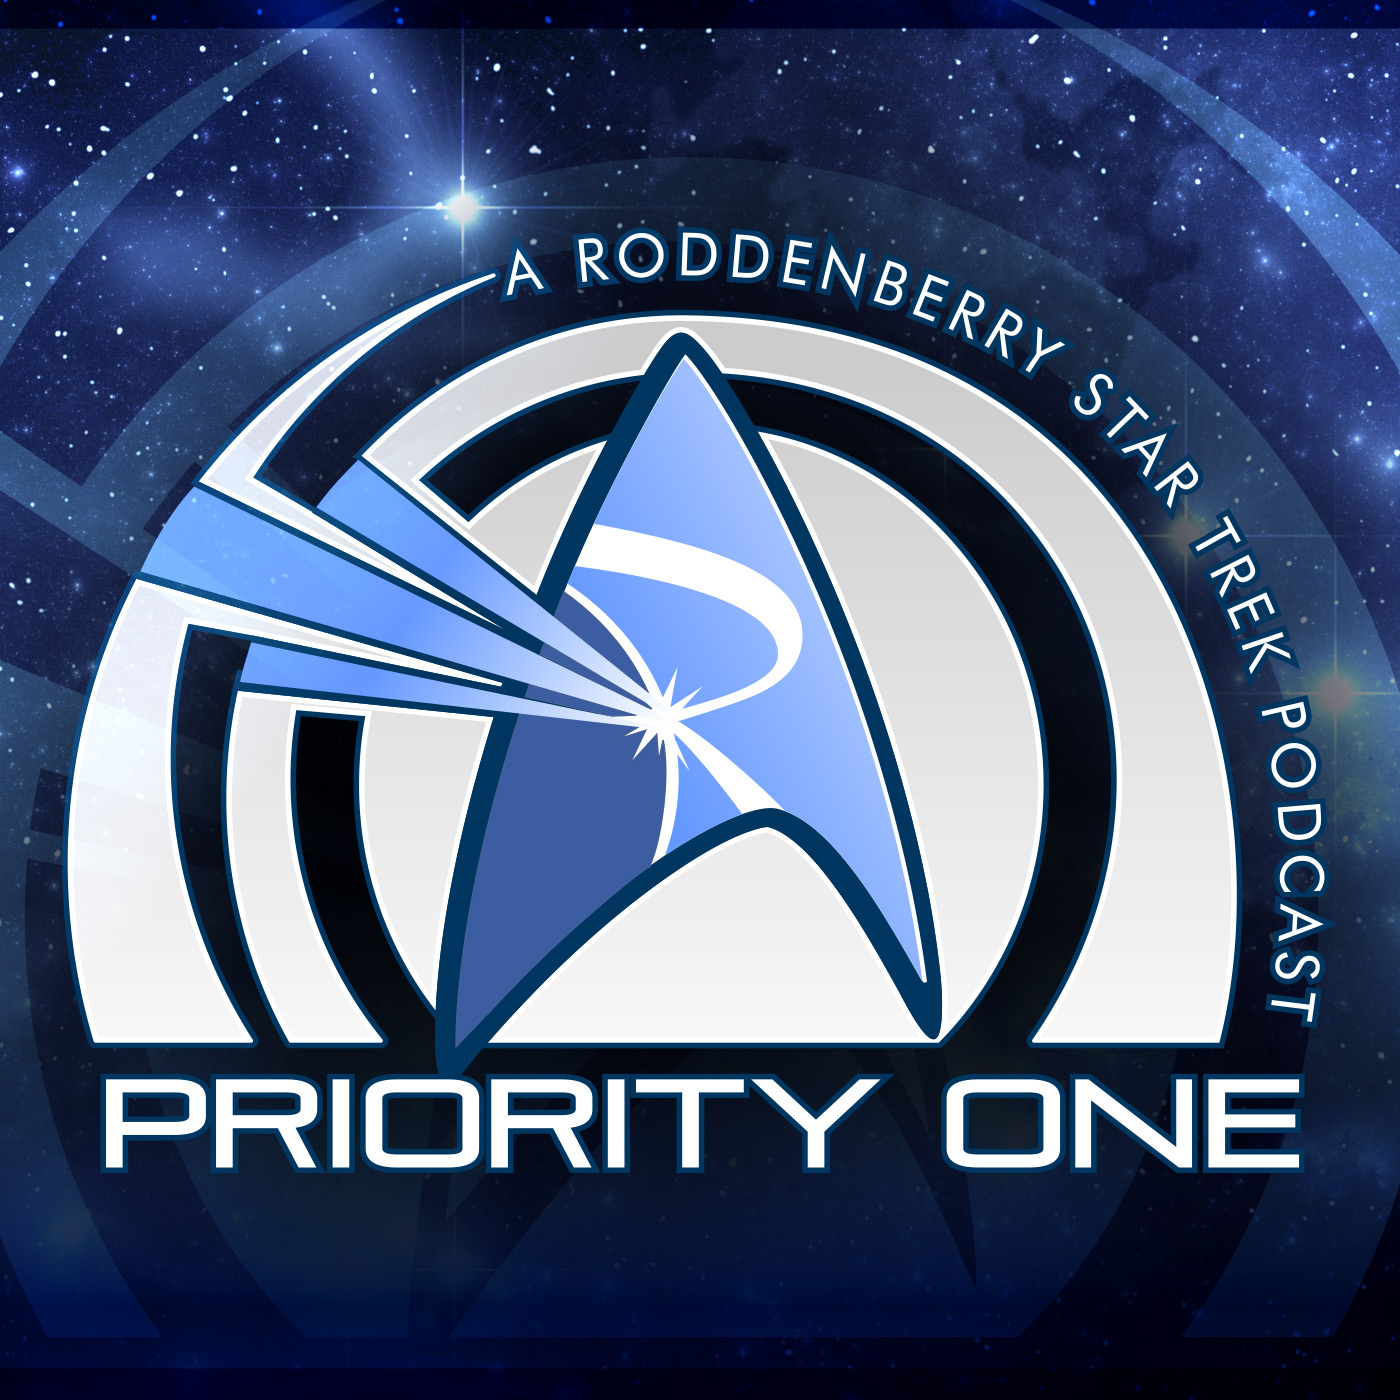 Artwork for 387 - Lower Your Decks | Priority One: A Roddenberry Star Trek Podcast